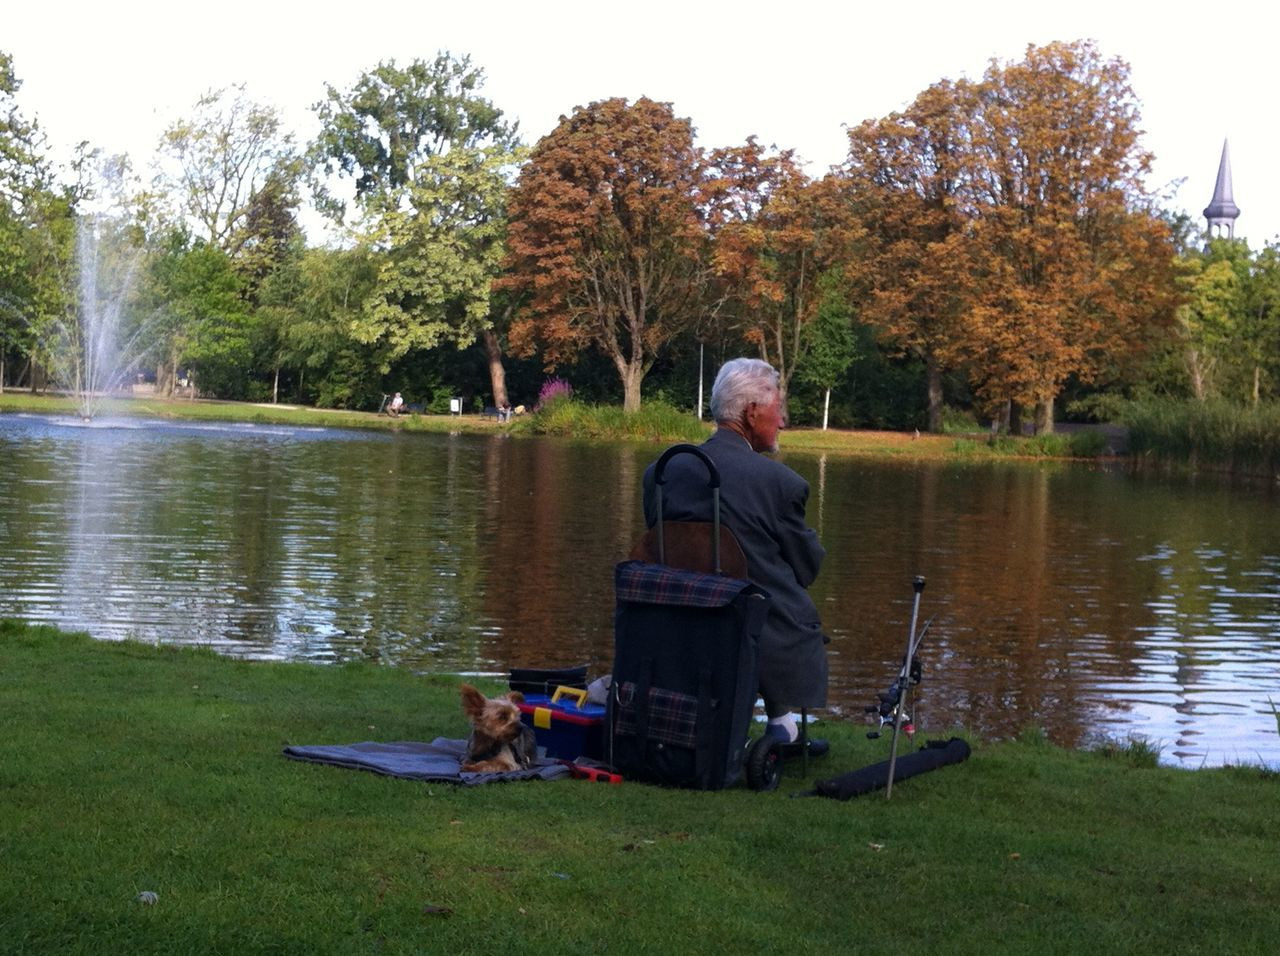 lake, sitting, water, tree, real people, leisure activity, rear view, nature, full length, senior adult, day, grass, outdoors, senior men, togetherness, lifestyles, beauty in nature, relaxation, men, mammal, sky, people